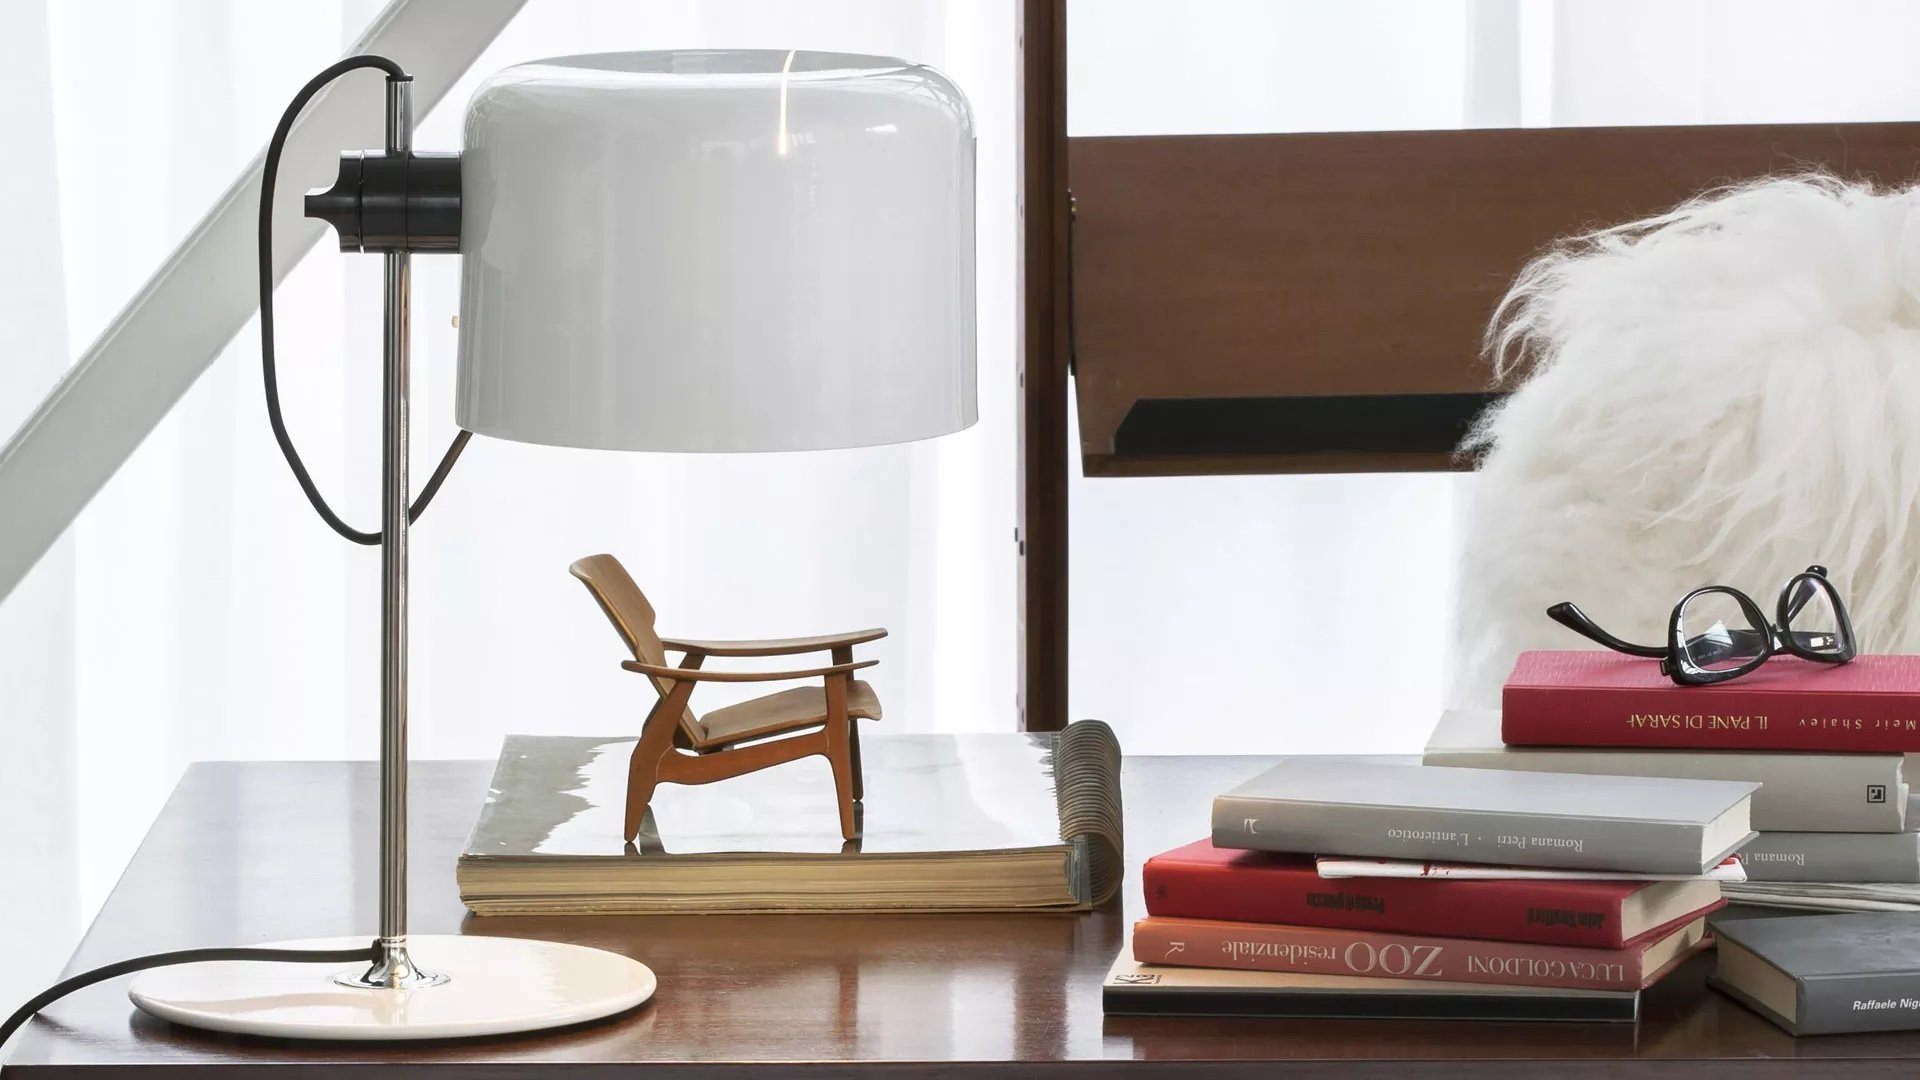 Coupe Table Lamp lighting from Oluce, designed by Joe Colombo